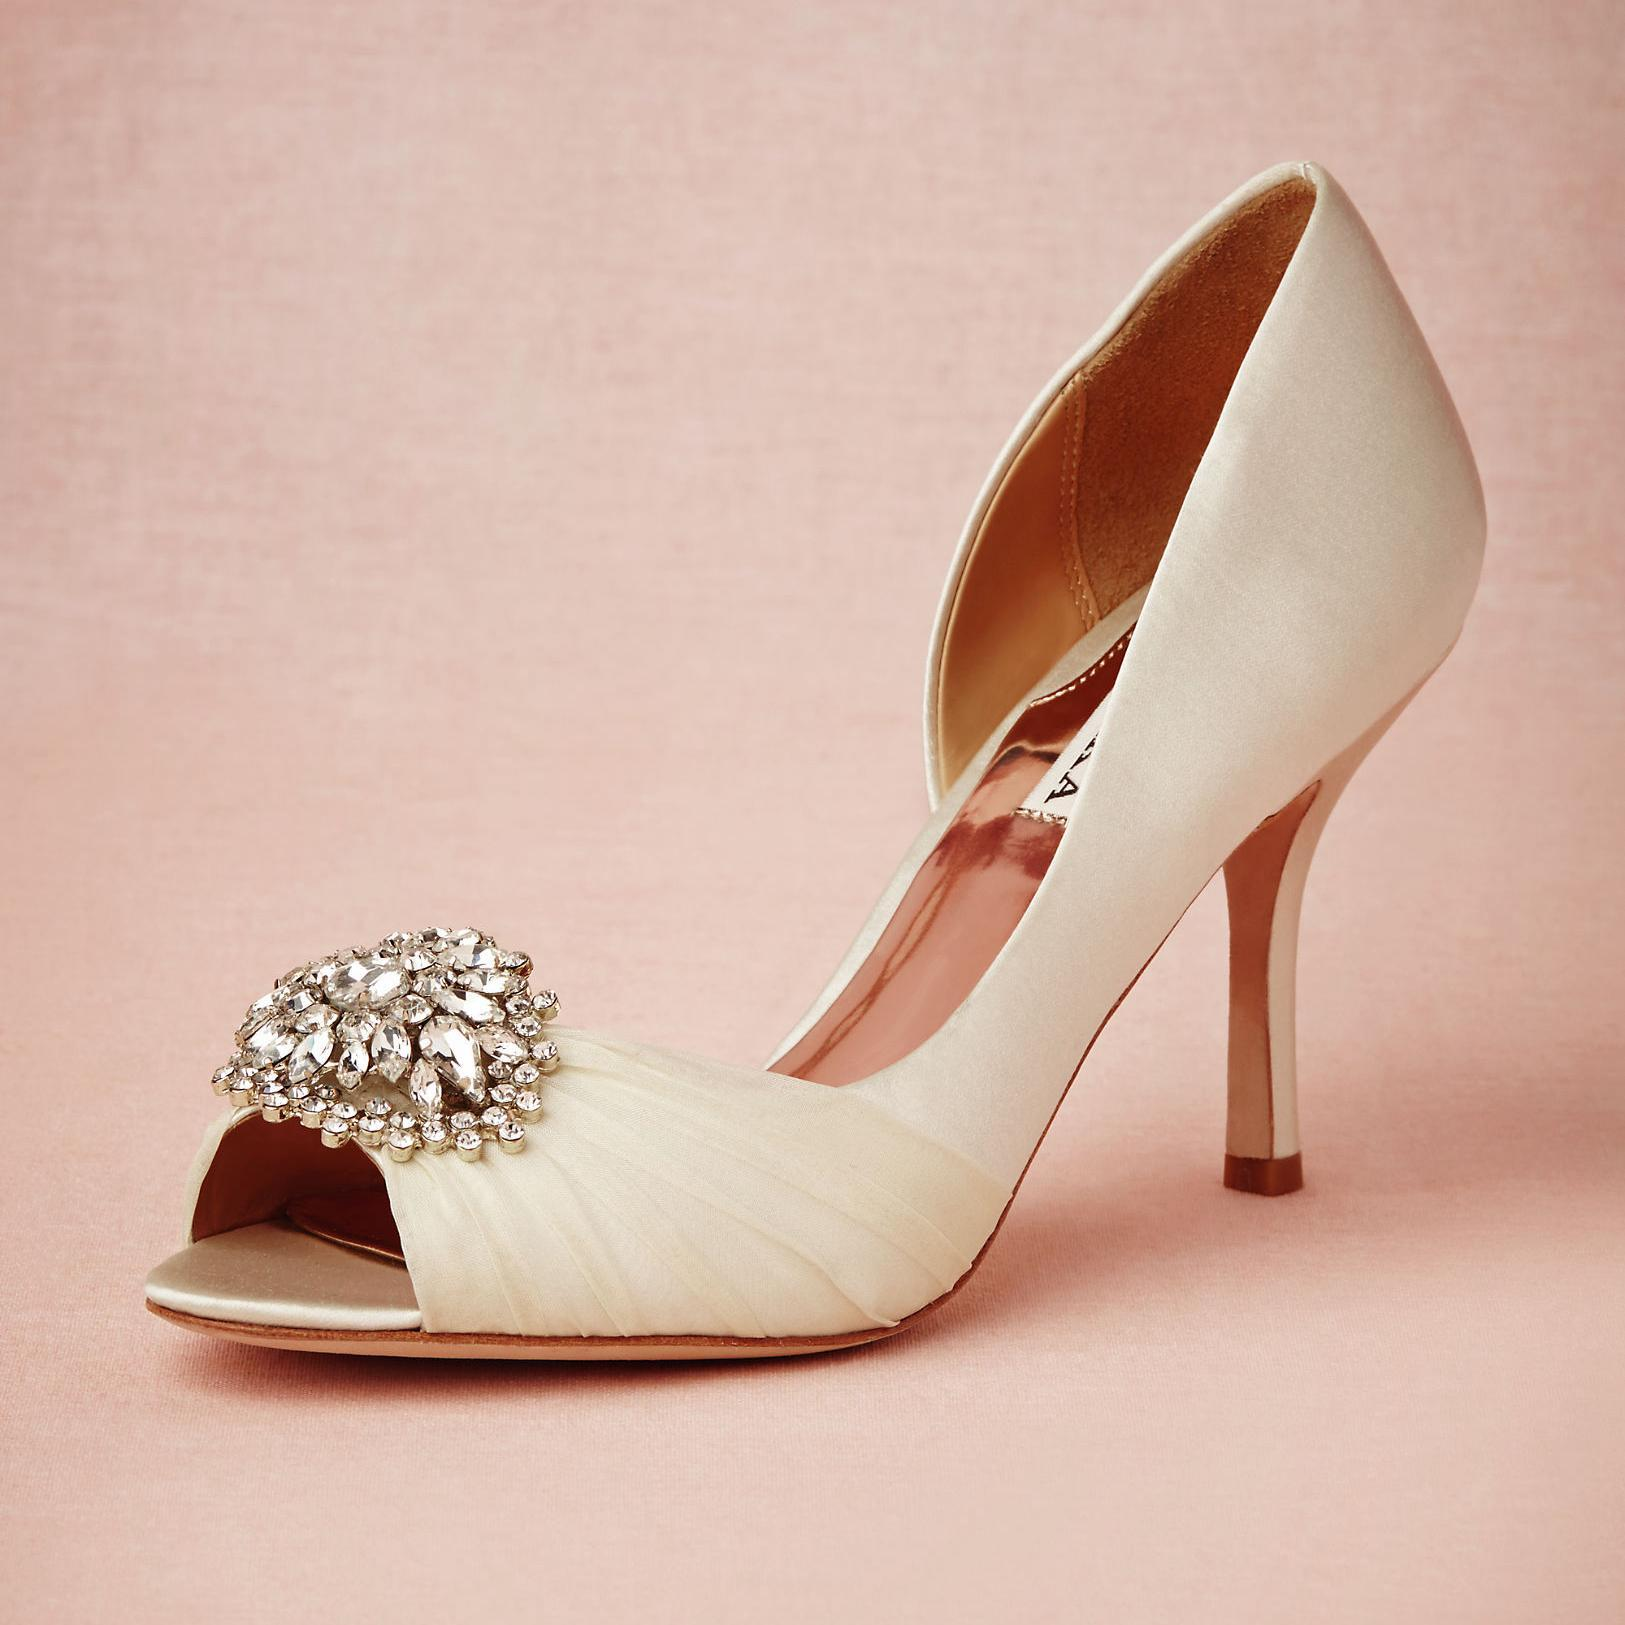 Wedding Shoes Heels | Glamorous Mid Heel Wedding Shoes Heels Custom Pumps Peep Toe Evening